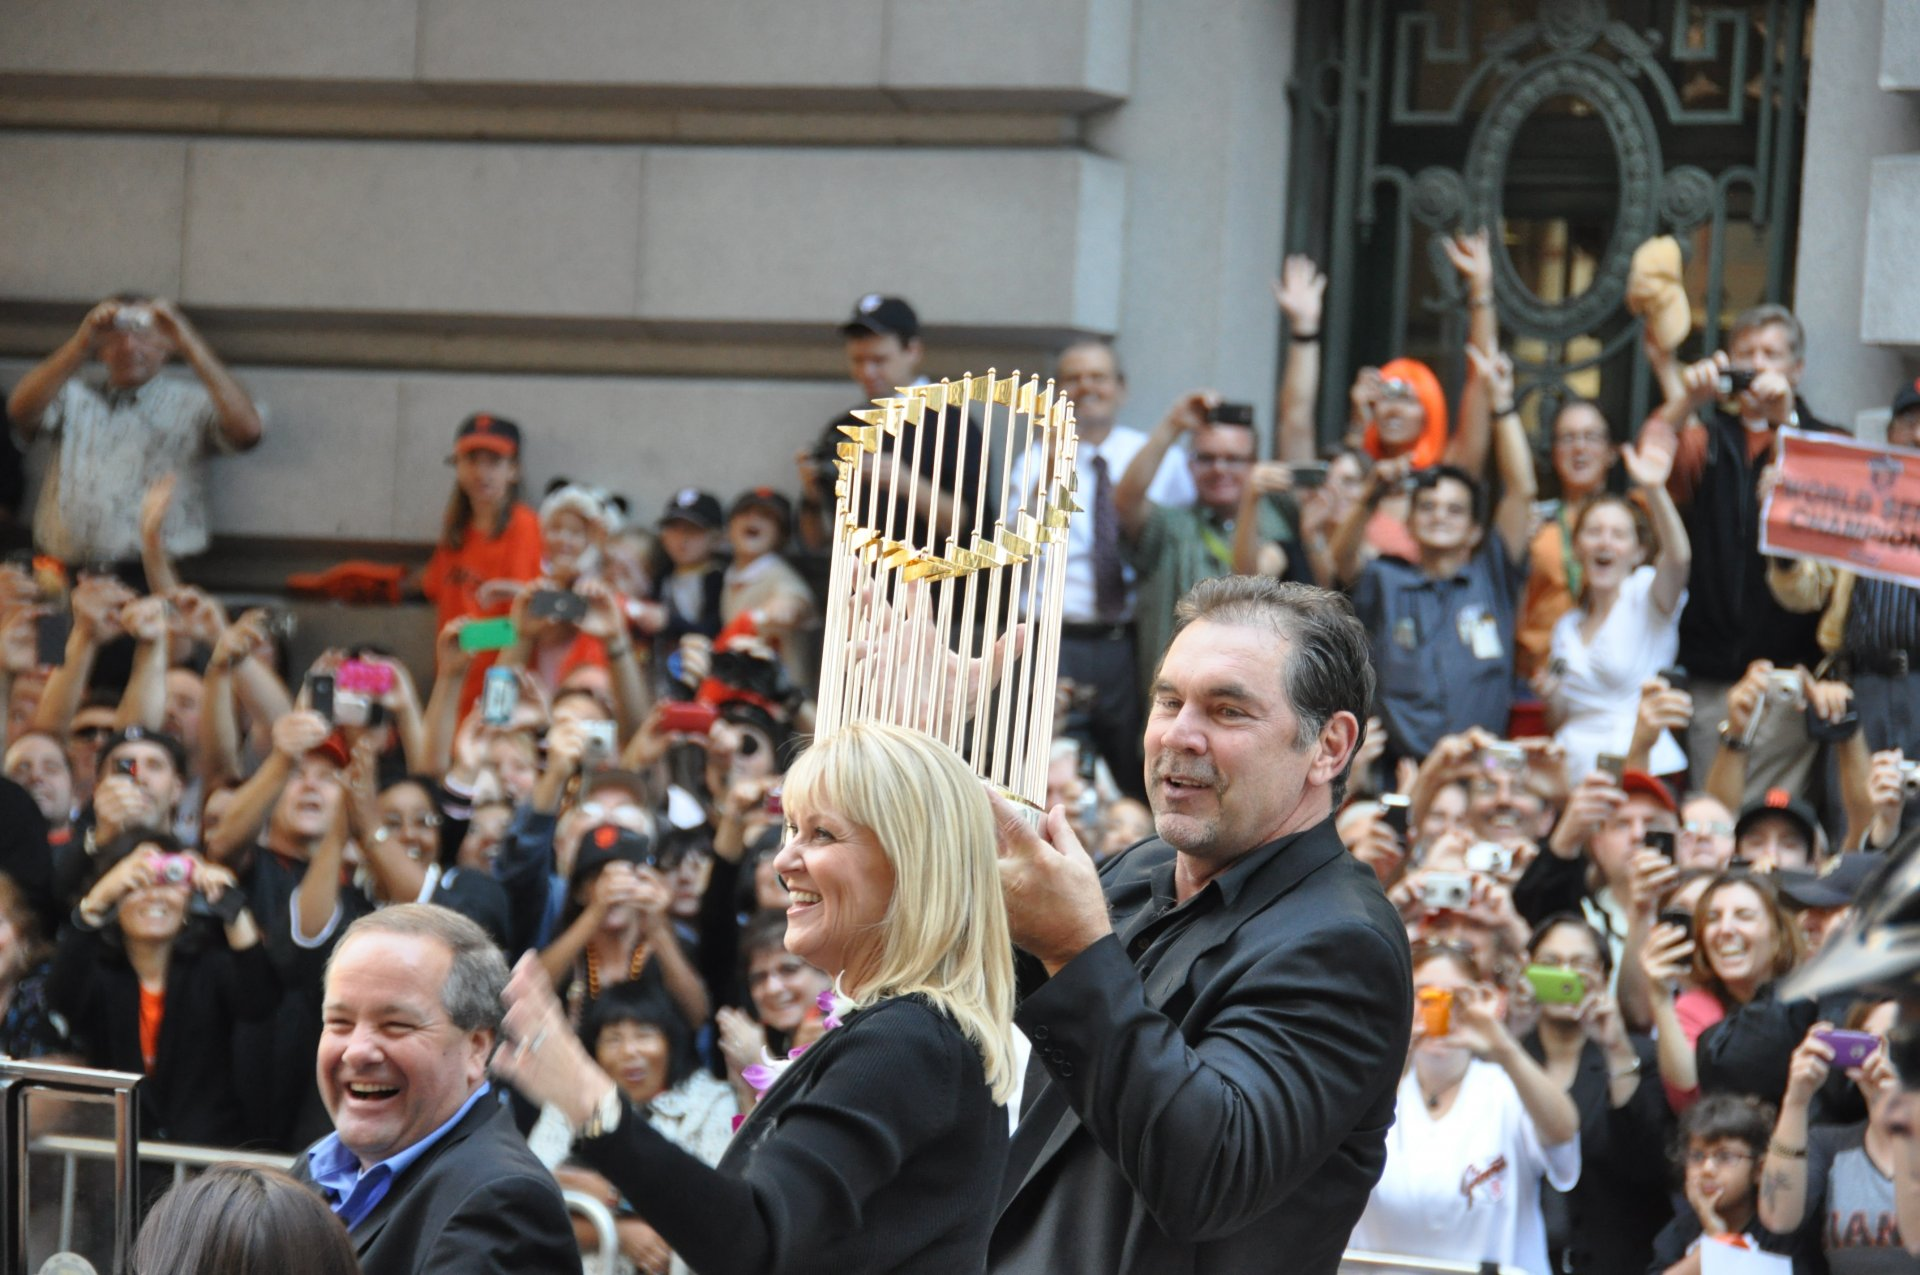 Bruce Bochy holding up the Commissioner's Trophy after the Giants' 2010 World Series win. | Photo by Mike Deerkoski